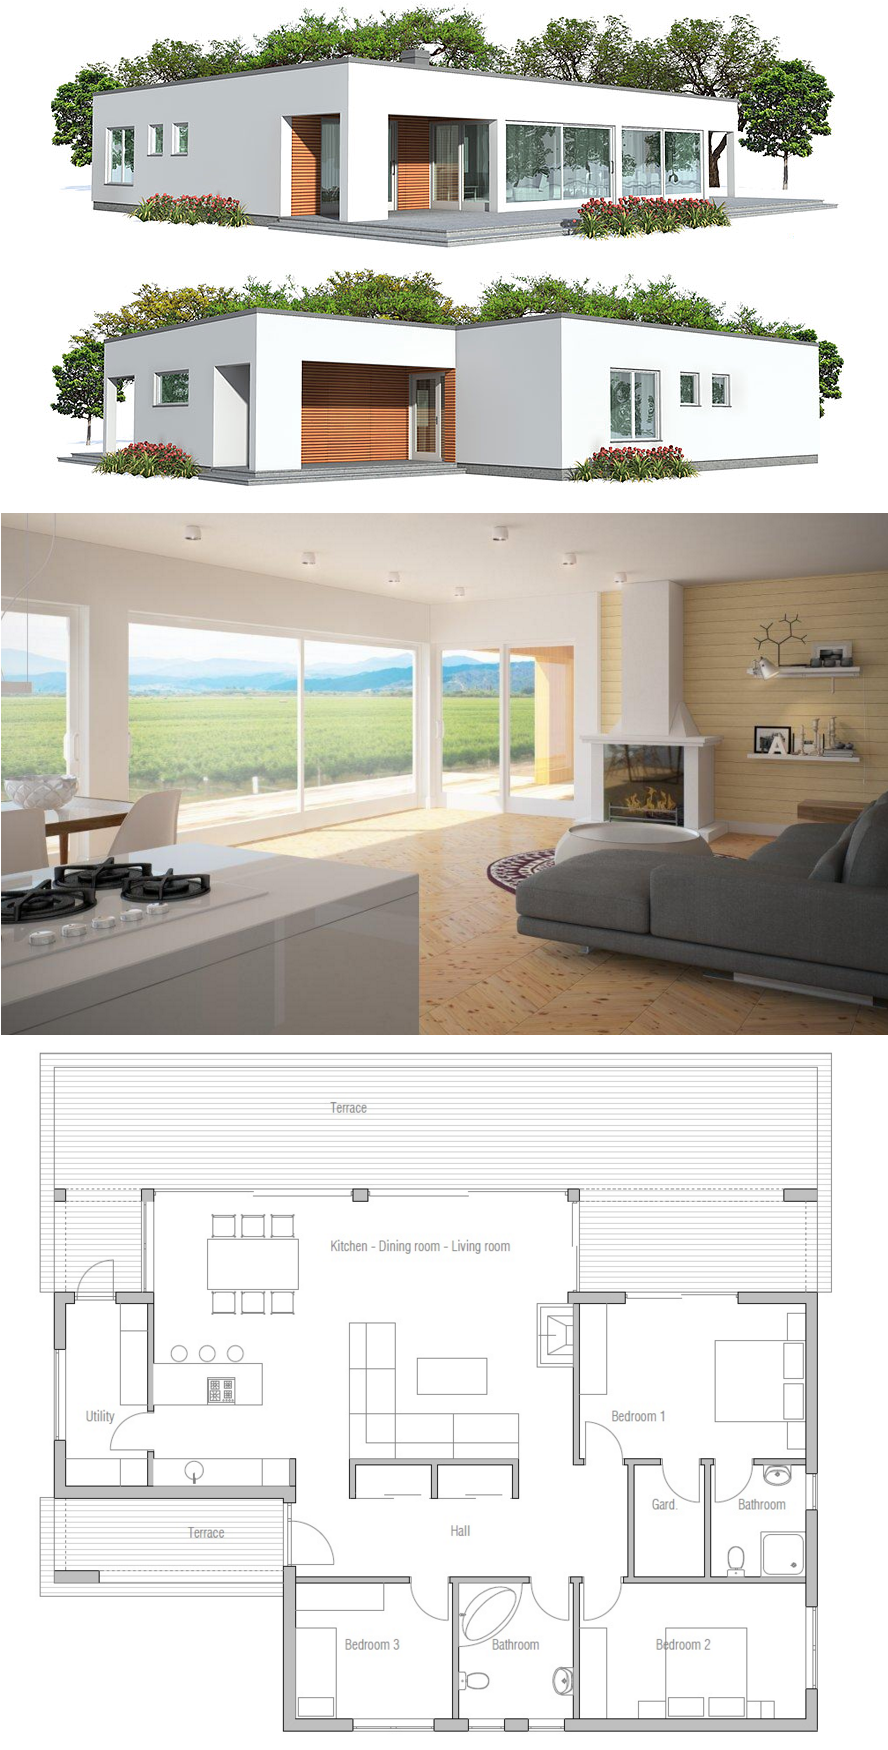 House Designs, Home Plans, Floor Plans #homeplans #architecture #housedesigns #newhome